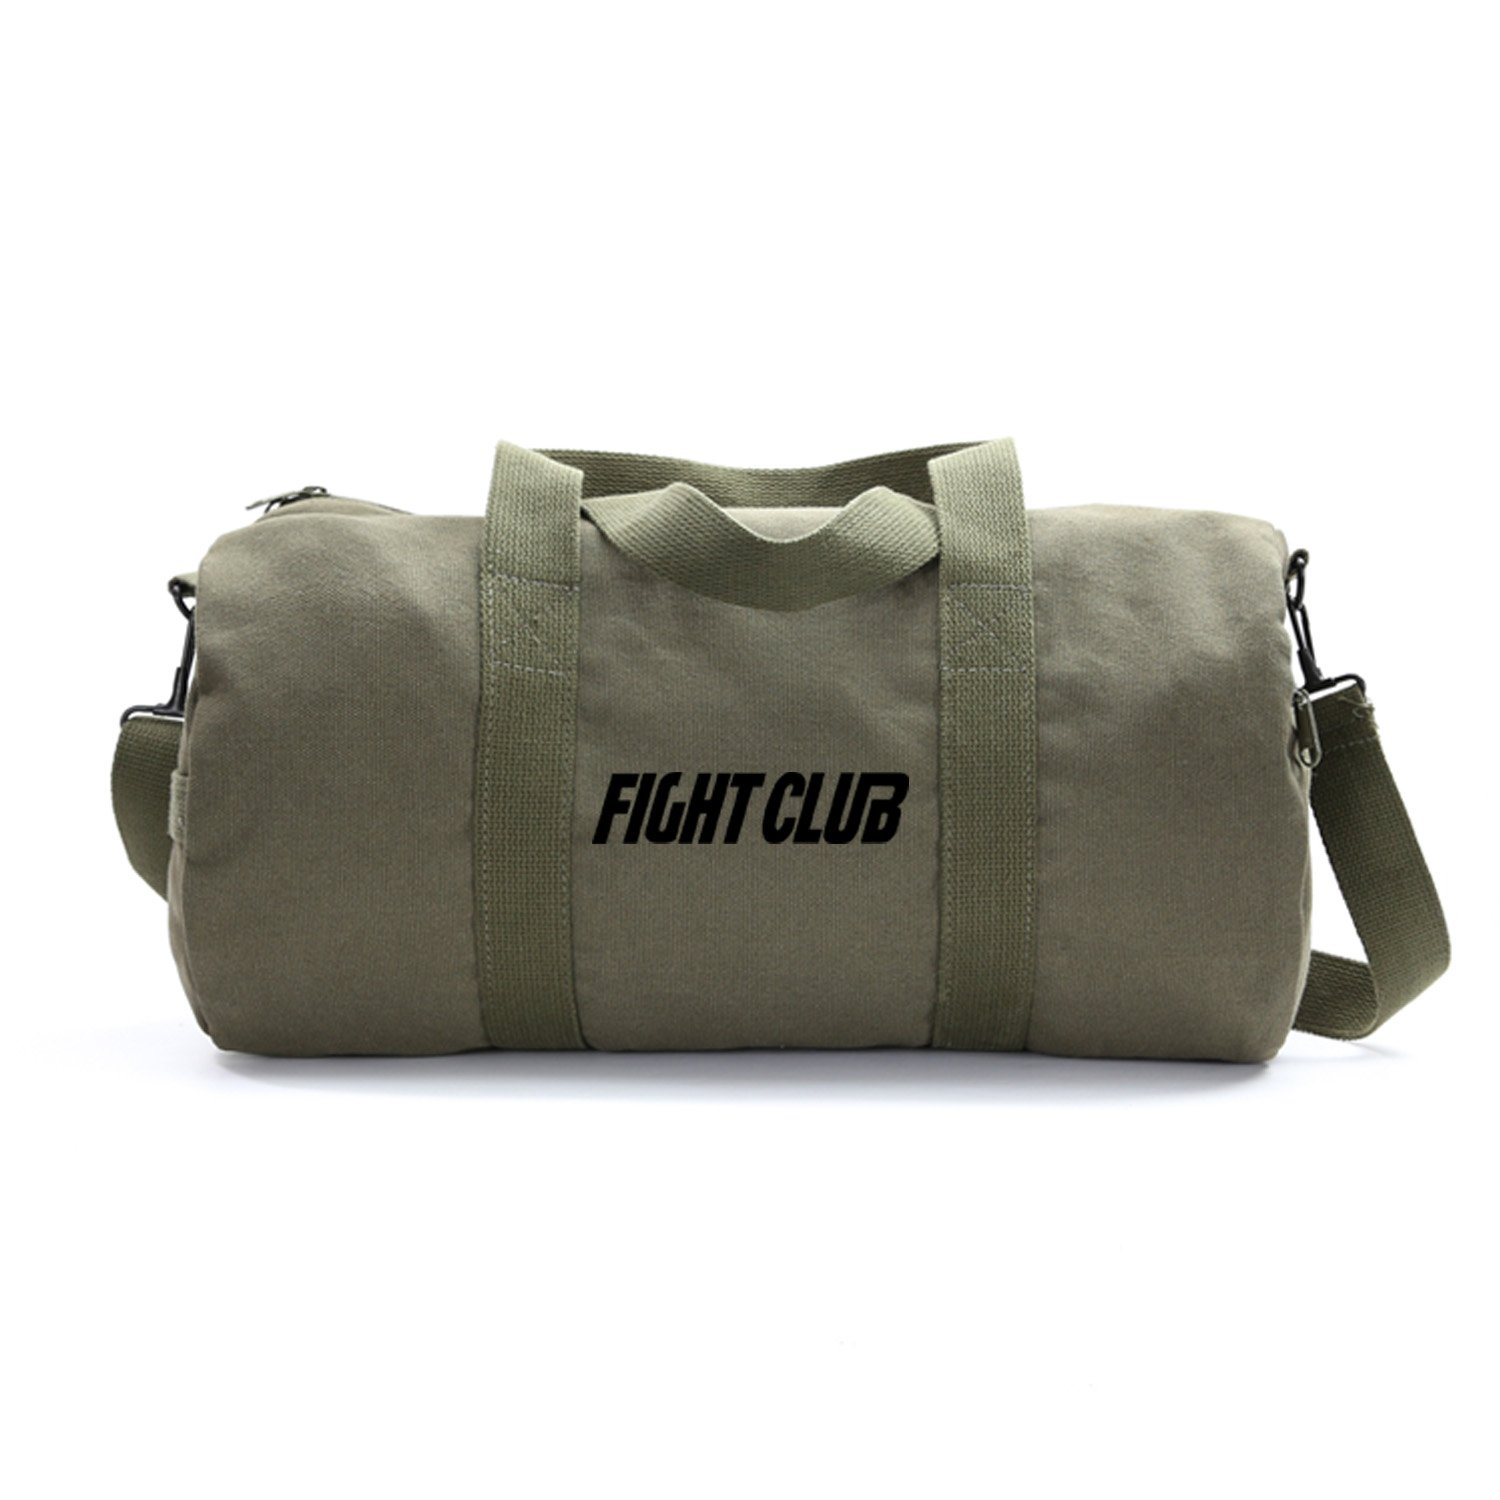 FIGHT CLUB Fighting Boxing Heavyweight Canvas Duffel Bag in Olive, Large